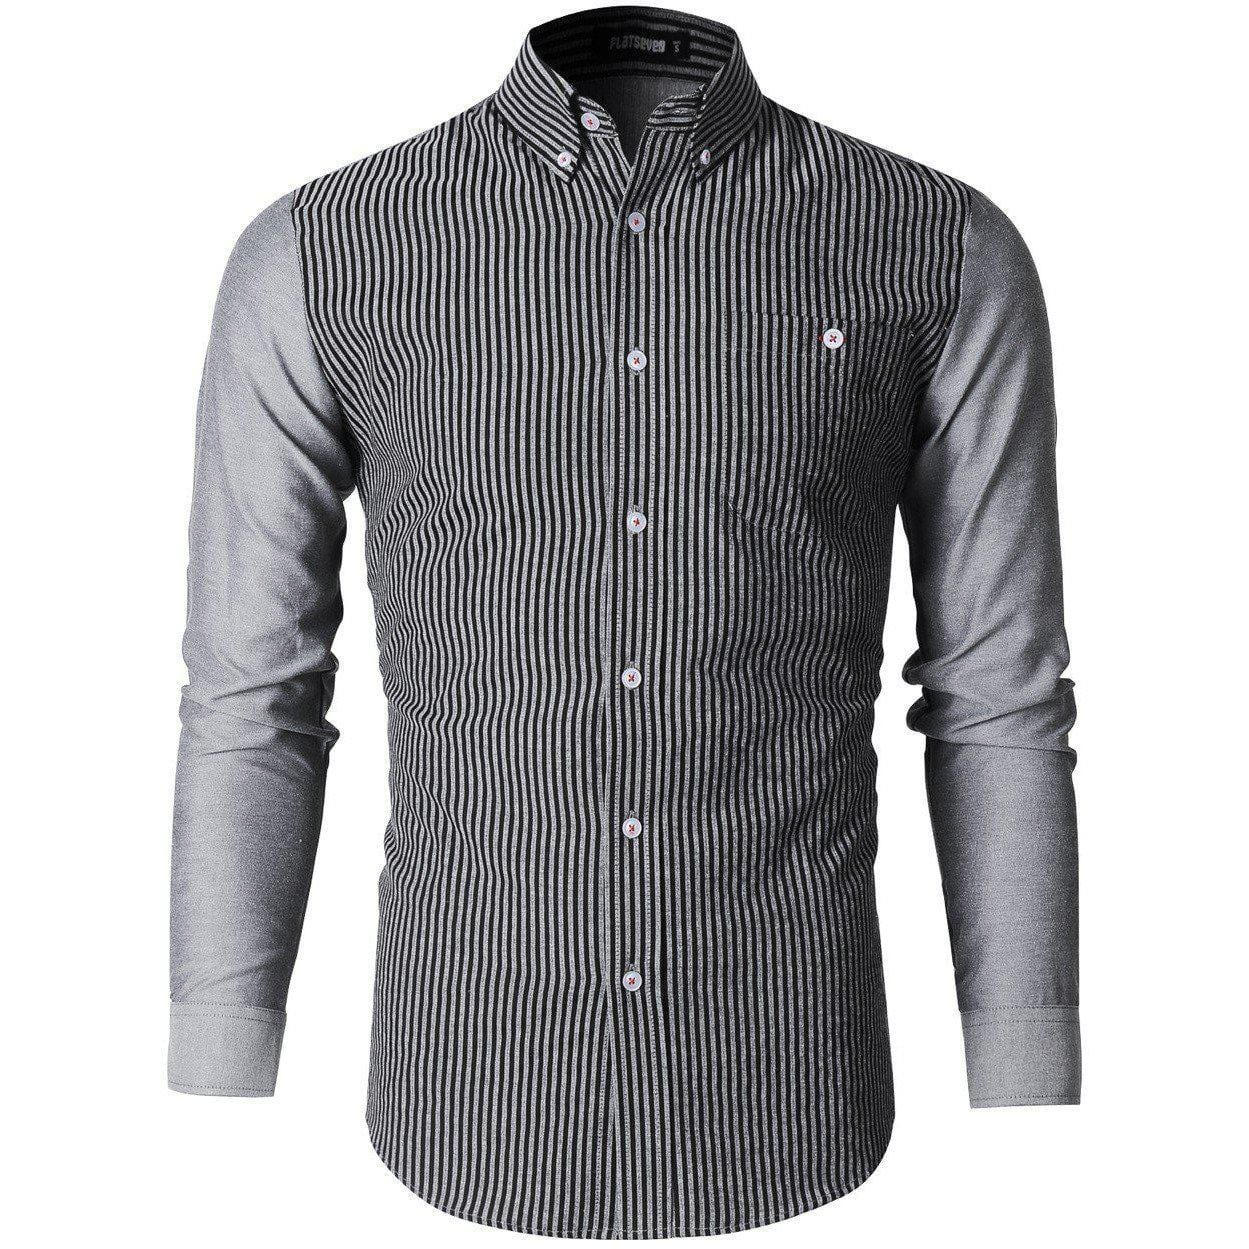 Gray Striped button down Casual shirt | men's shirt